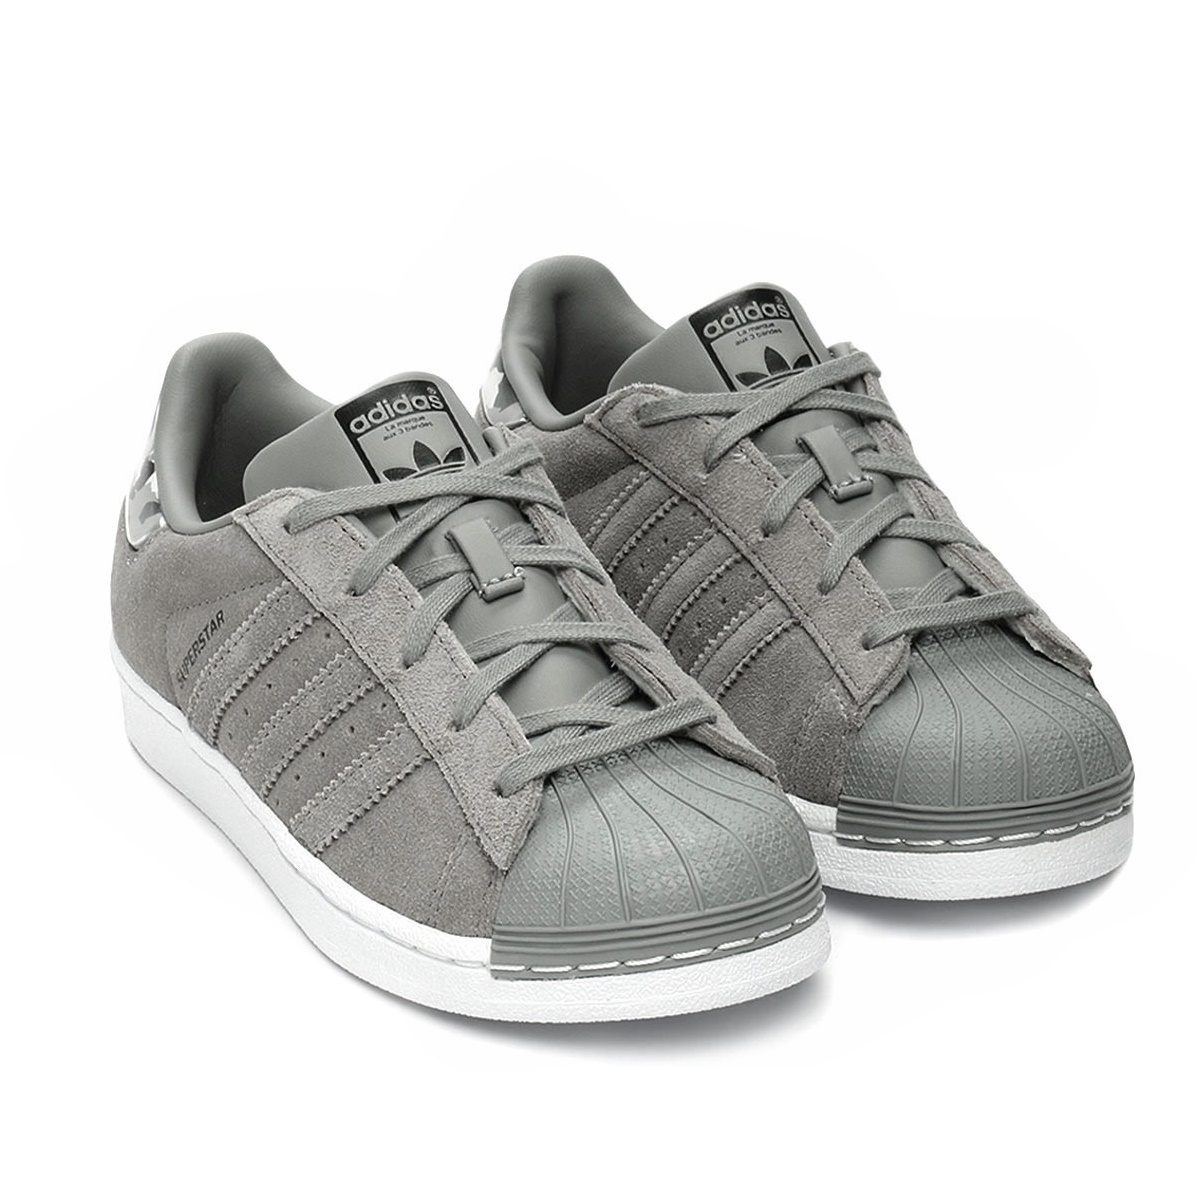 Adidas Originals Junior Superstar